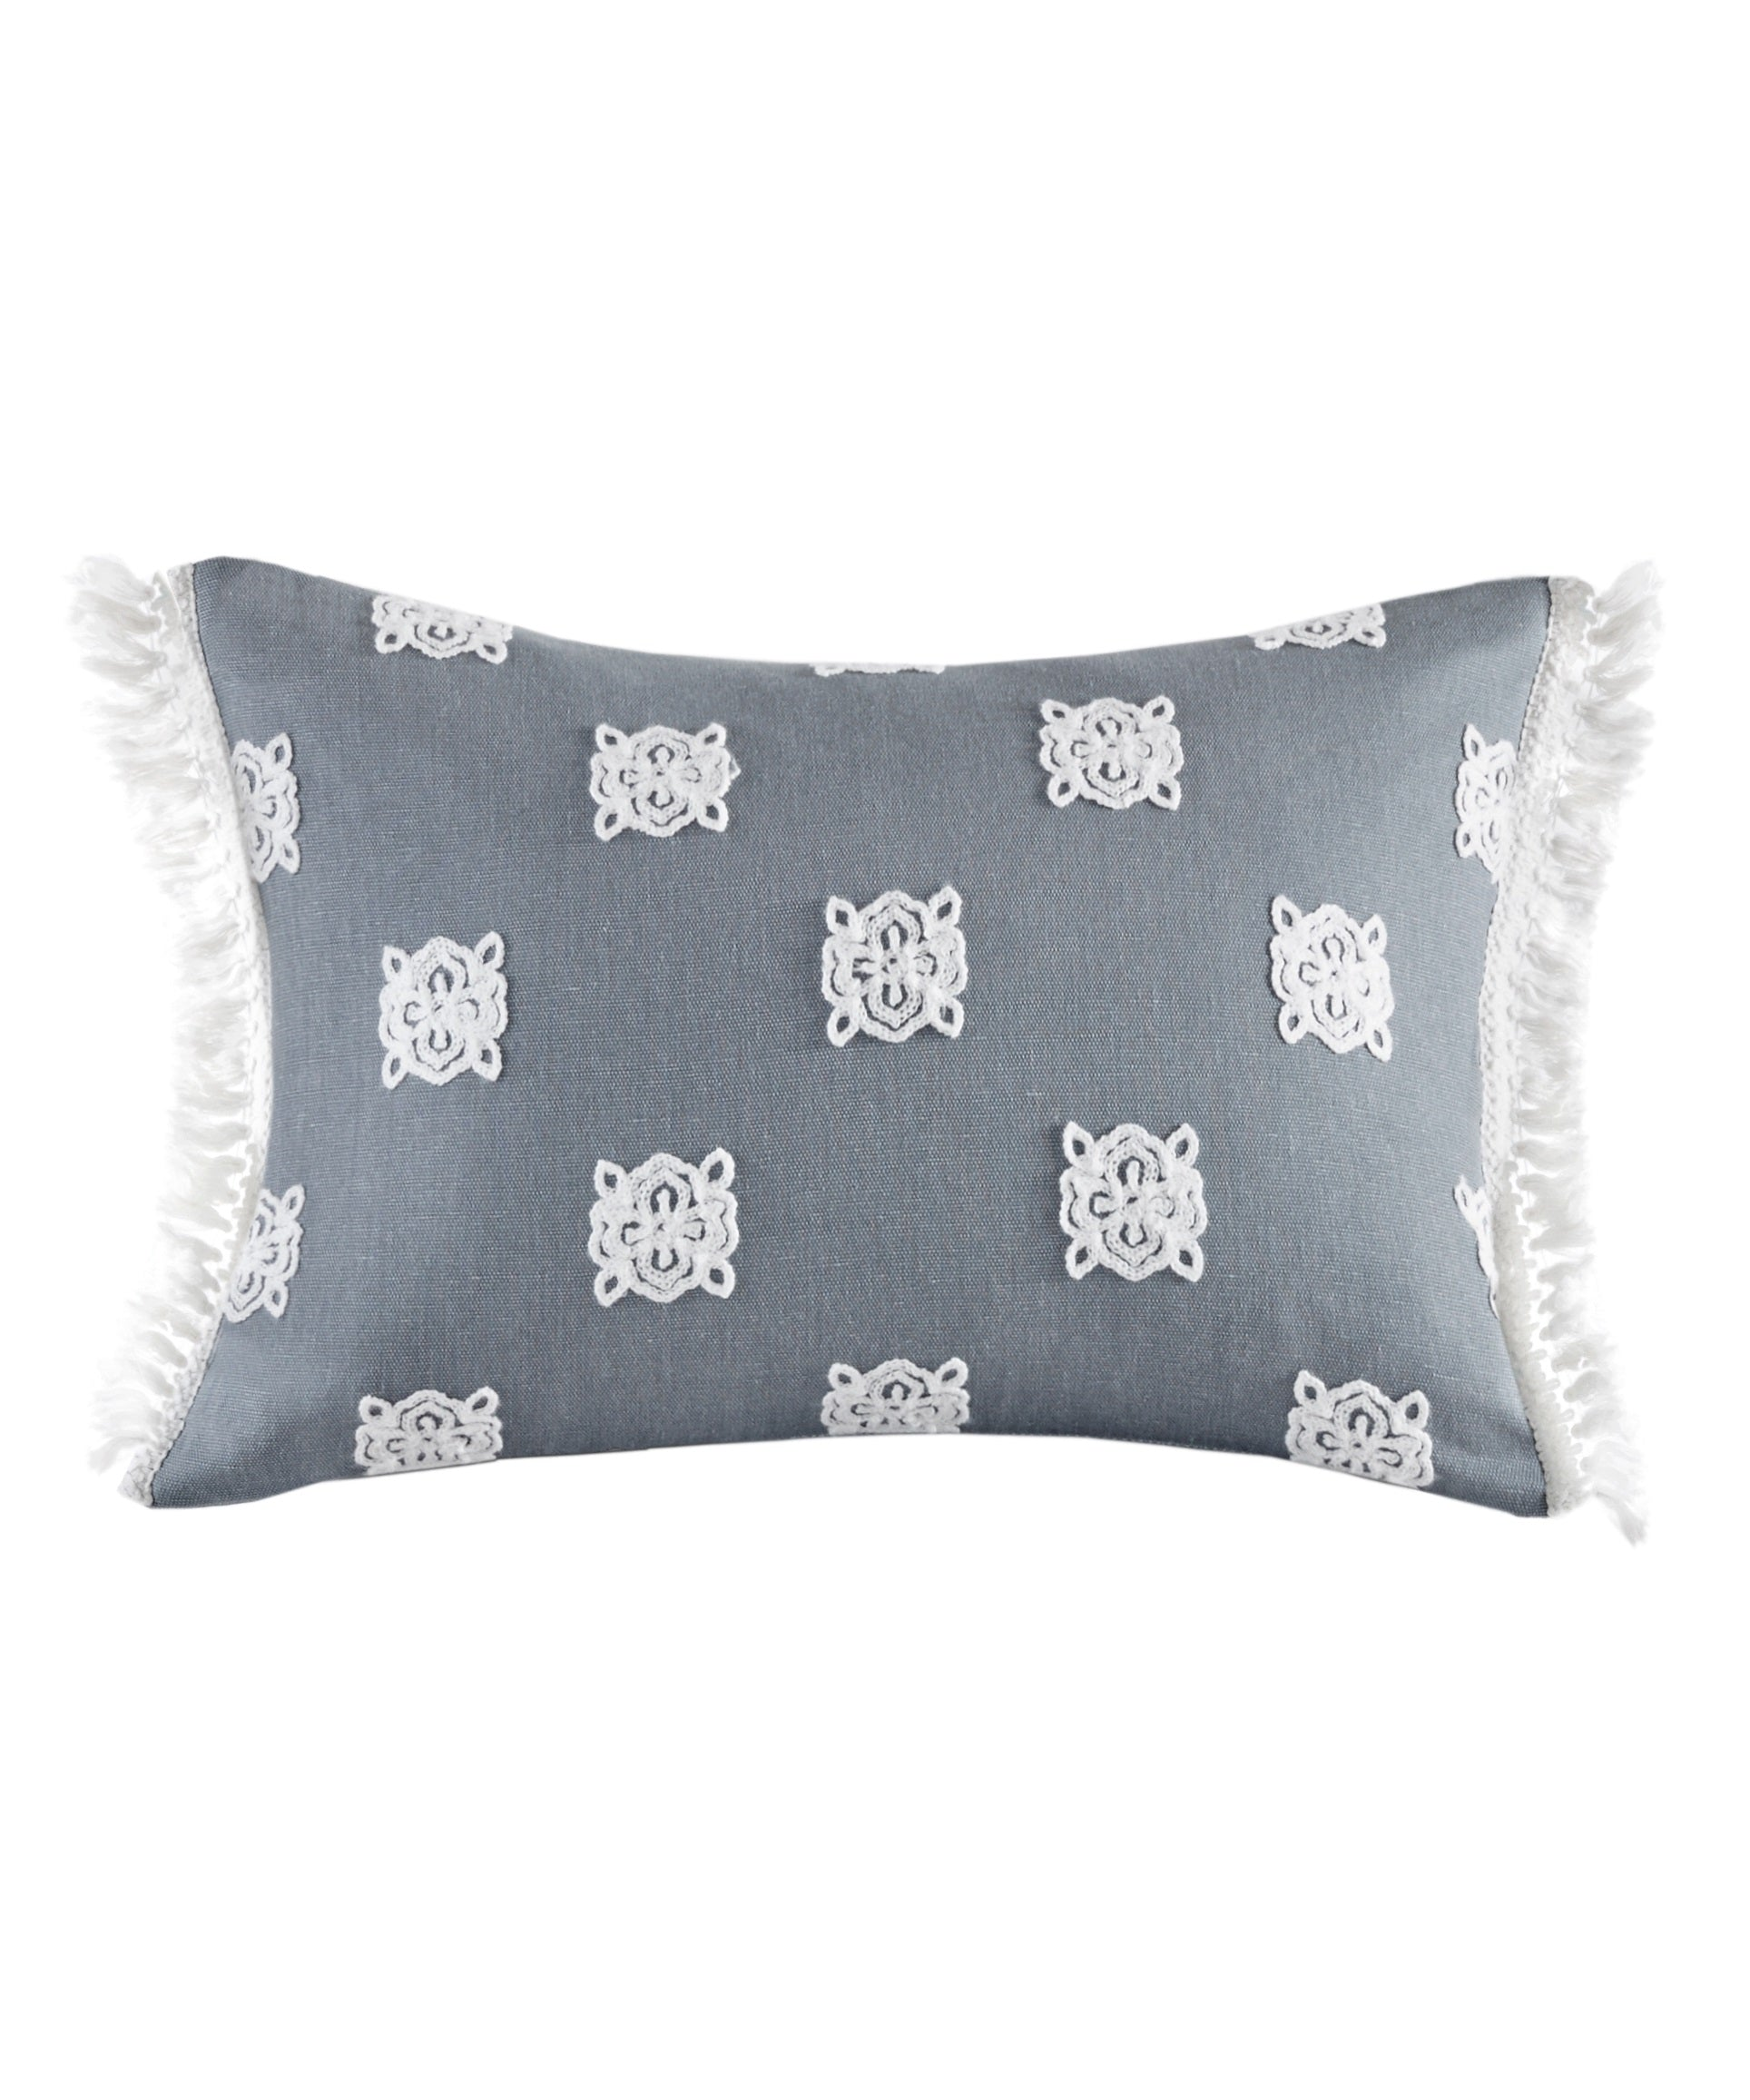 Slate - Venus Oblong Pillow